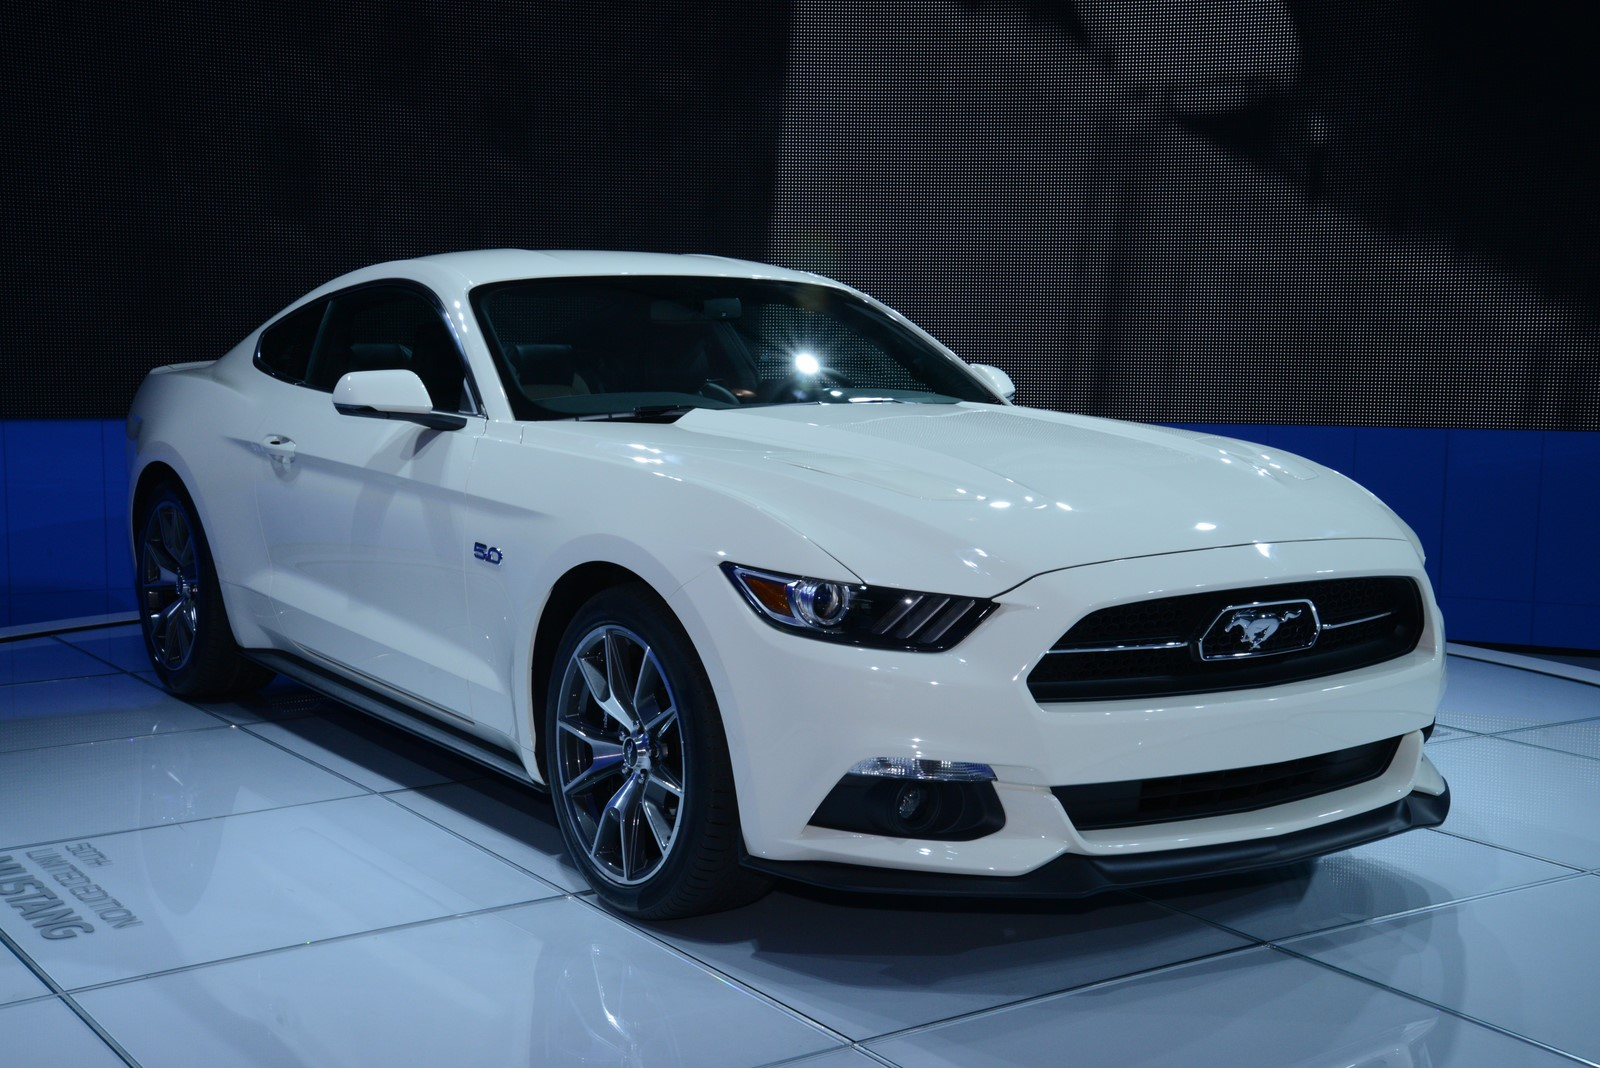 2019 Ford Mustang 50 Year Limited Edition photo - 6